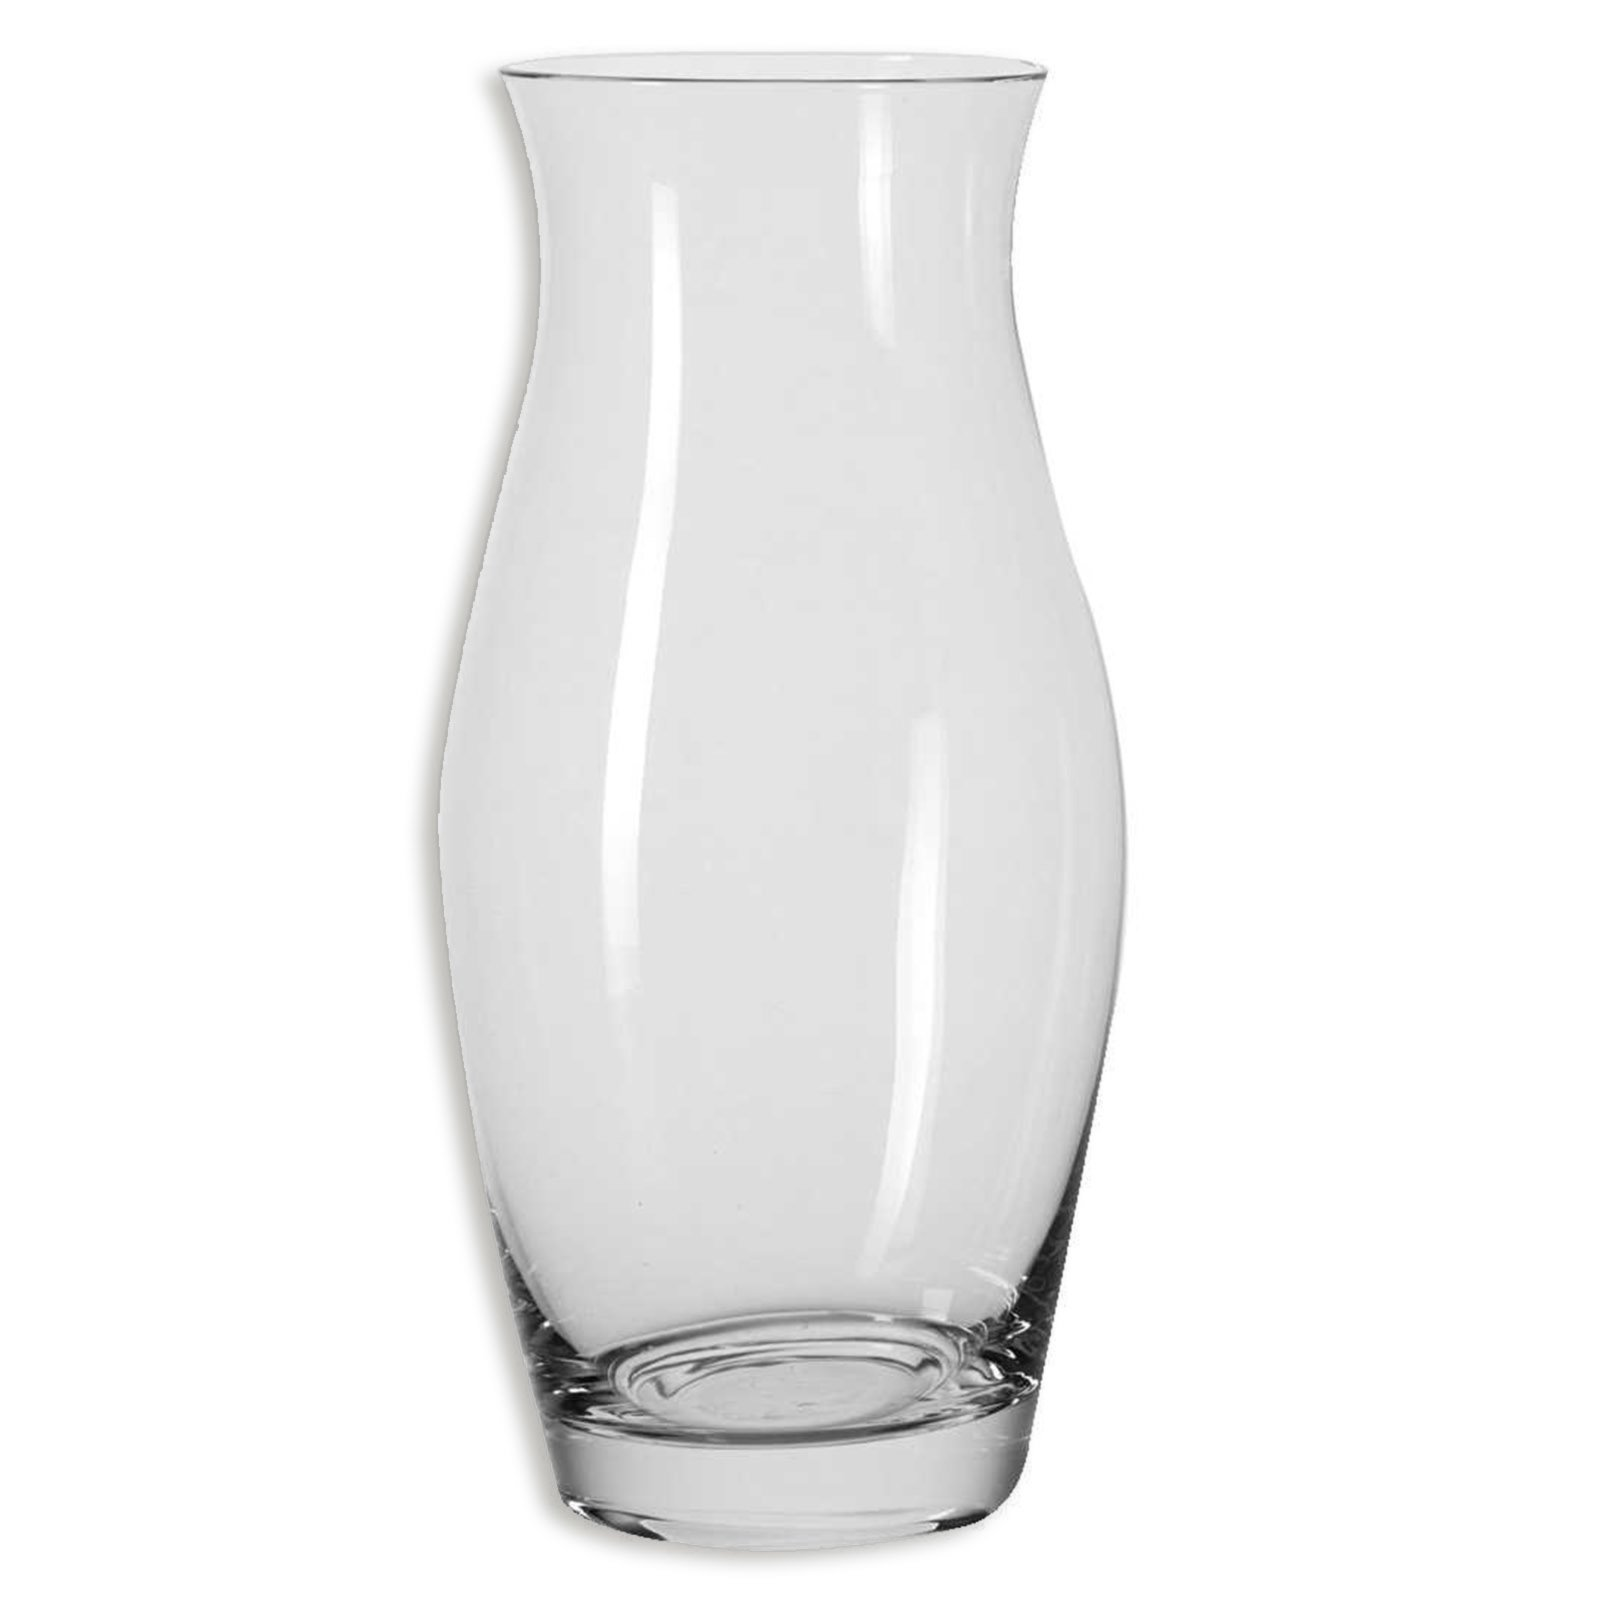 vase bloom glas 19 cm vasen dekoration deko haushalt roller m belhaus. Black Bedroom Furniture Sets. Home Design Ideas